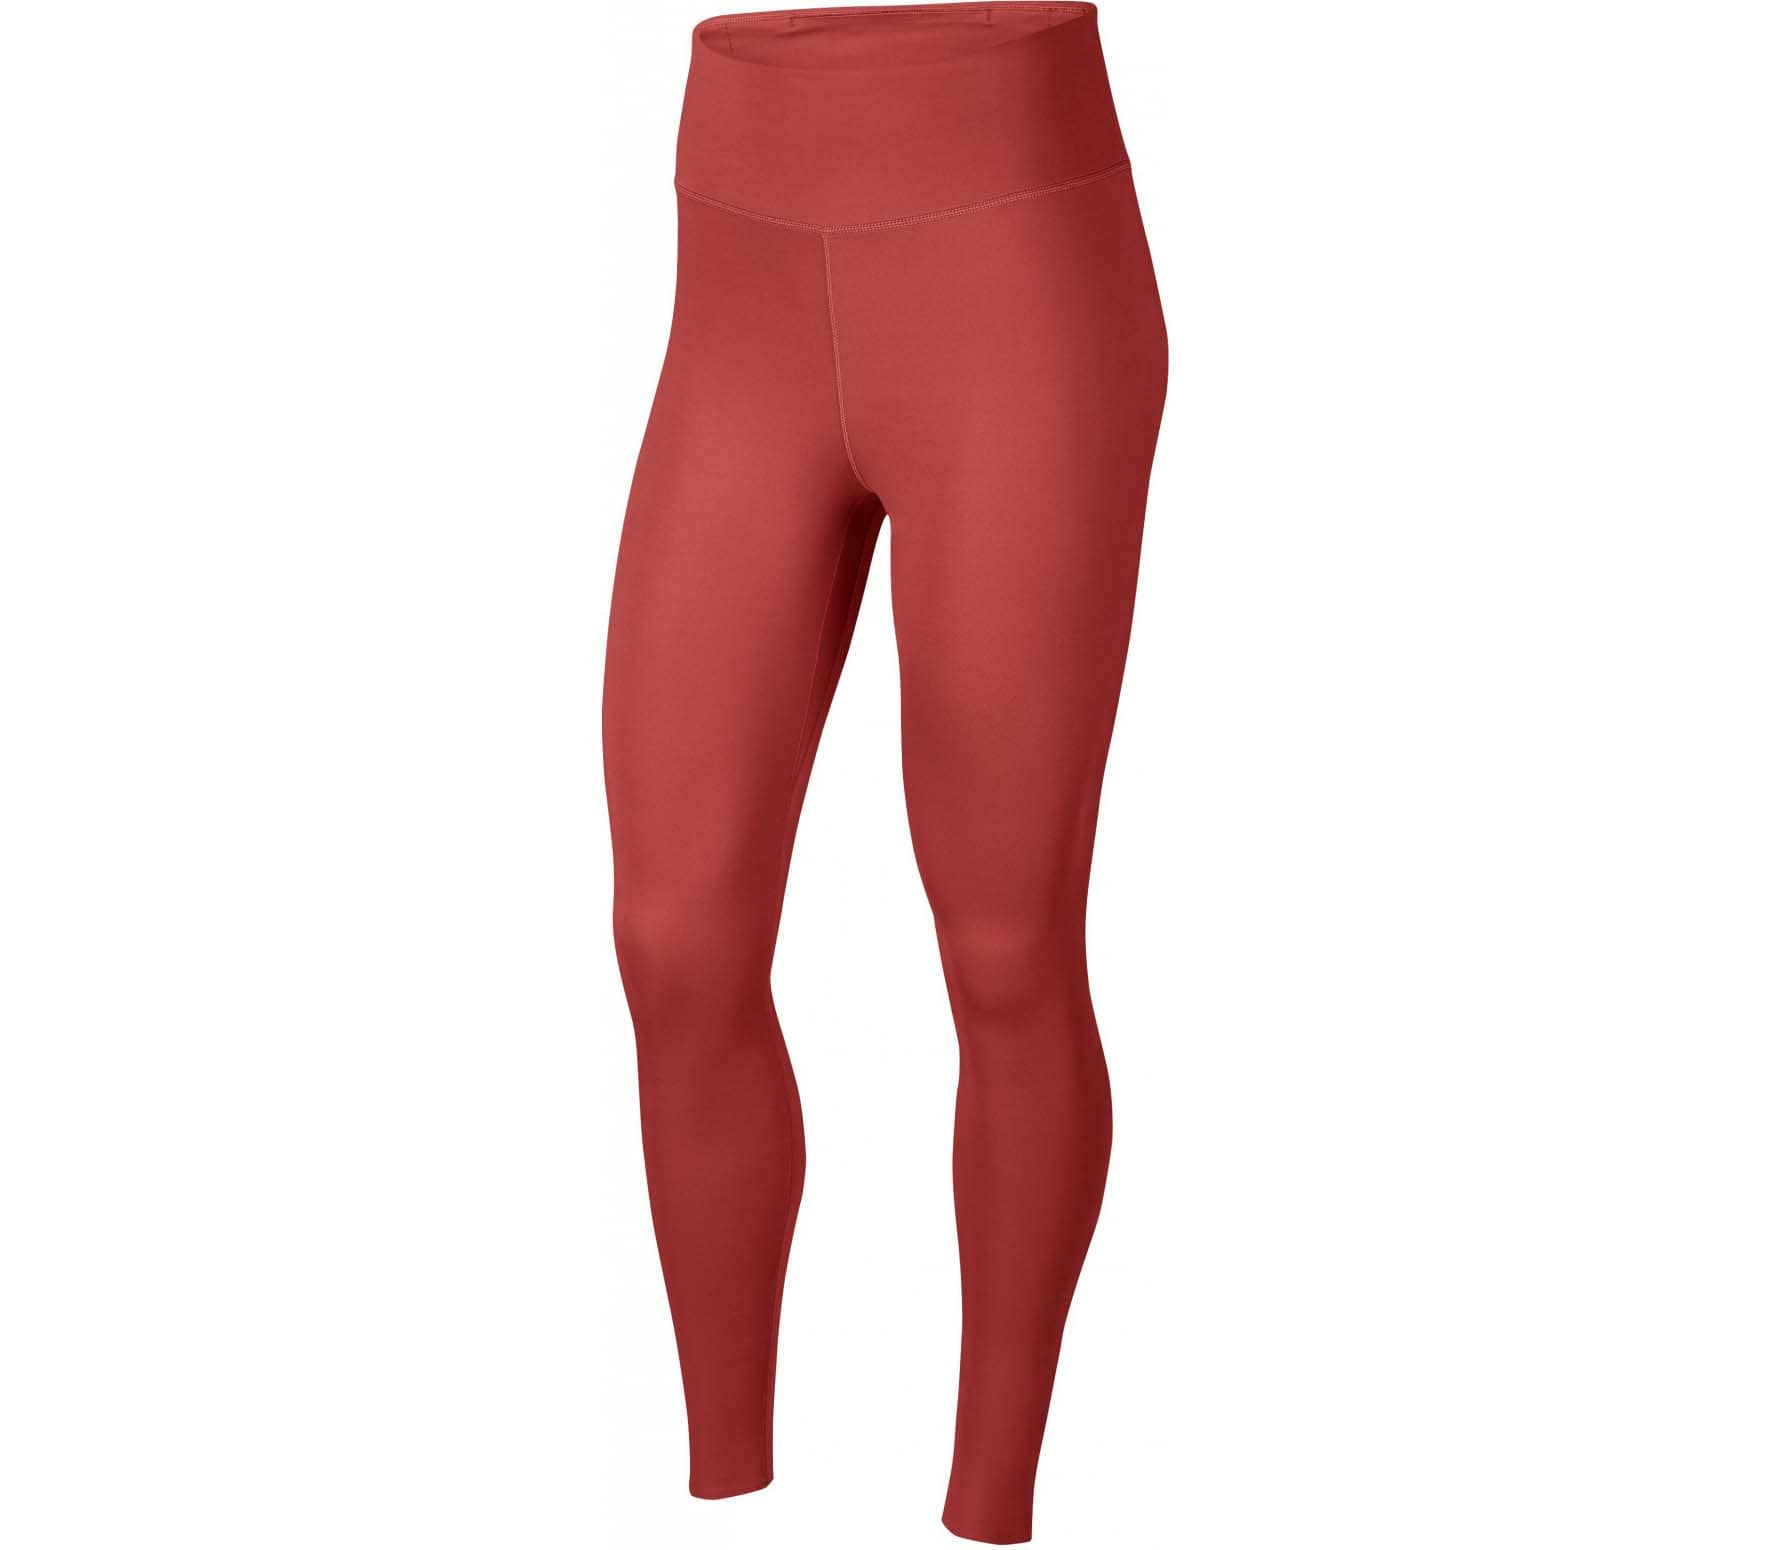 All-In Women Training Tights